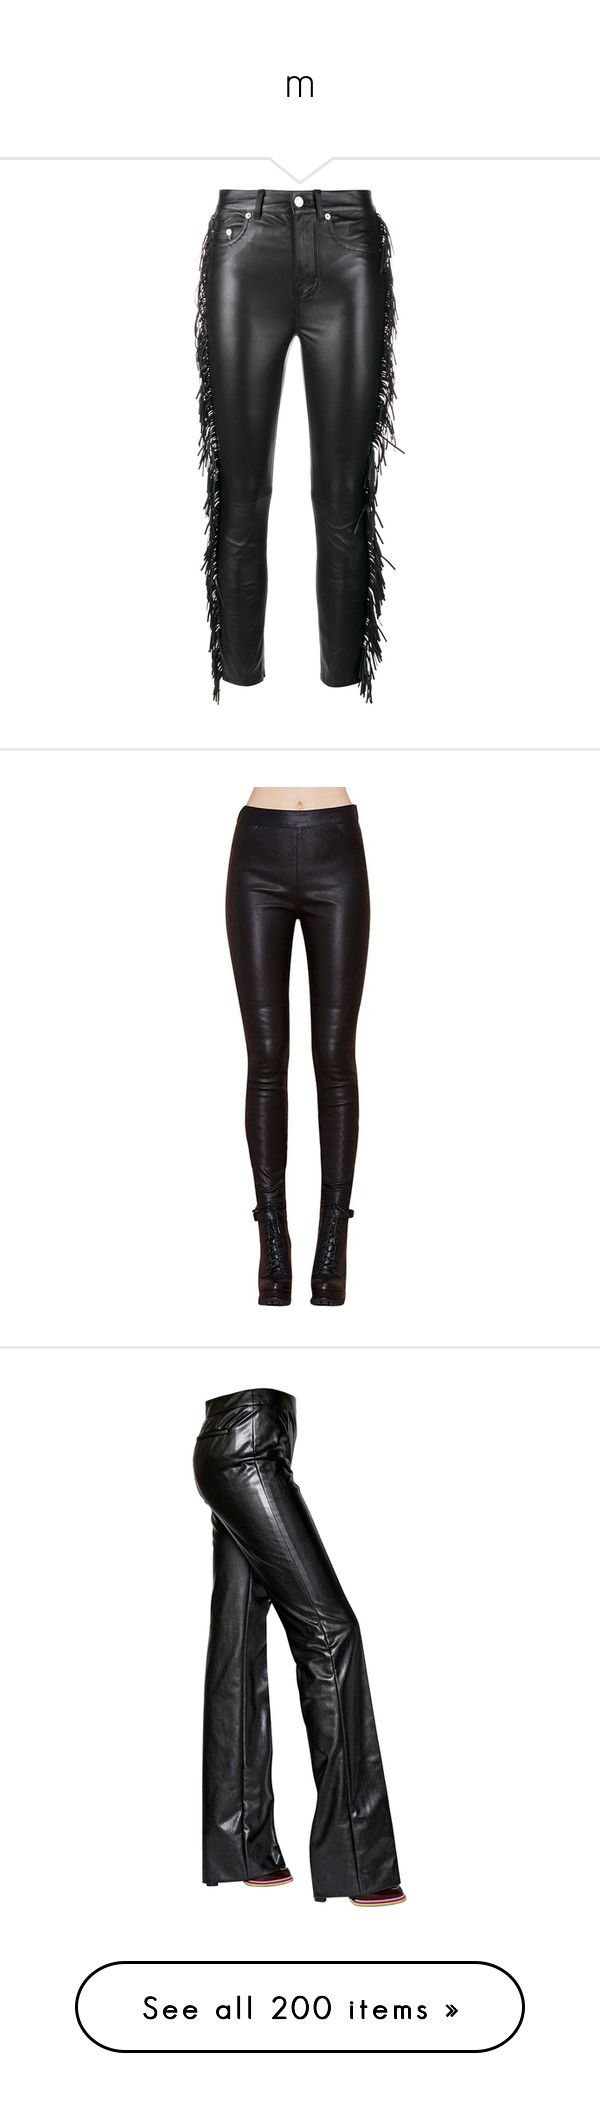 """m"" by bluekiller2002 ❤ liked on Polyvore featuring pants, trousers, black, black slim fit pants, black trousers, western pants, fringe pants, slim pants, leggings y black faux leather pants"